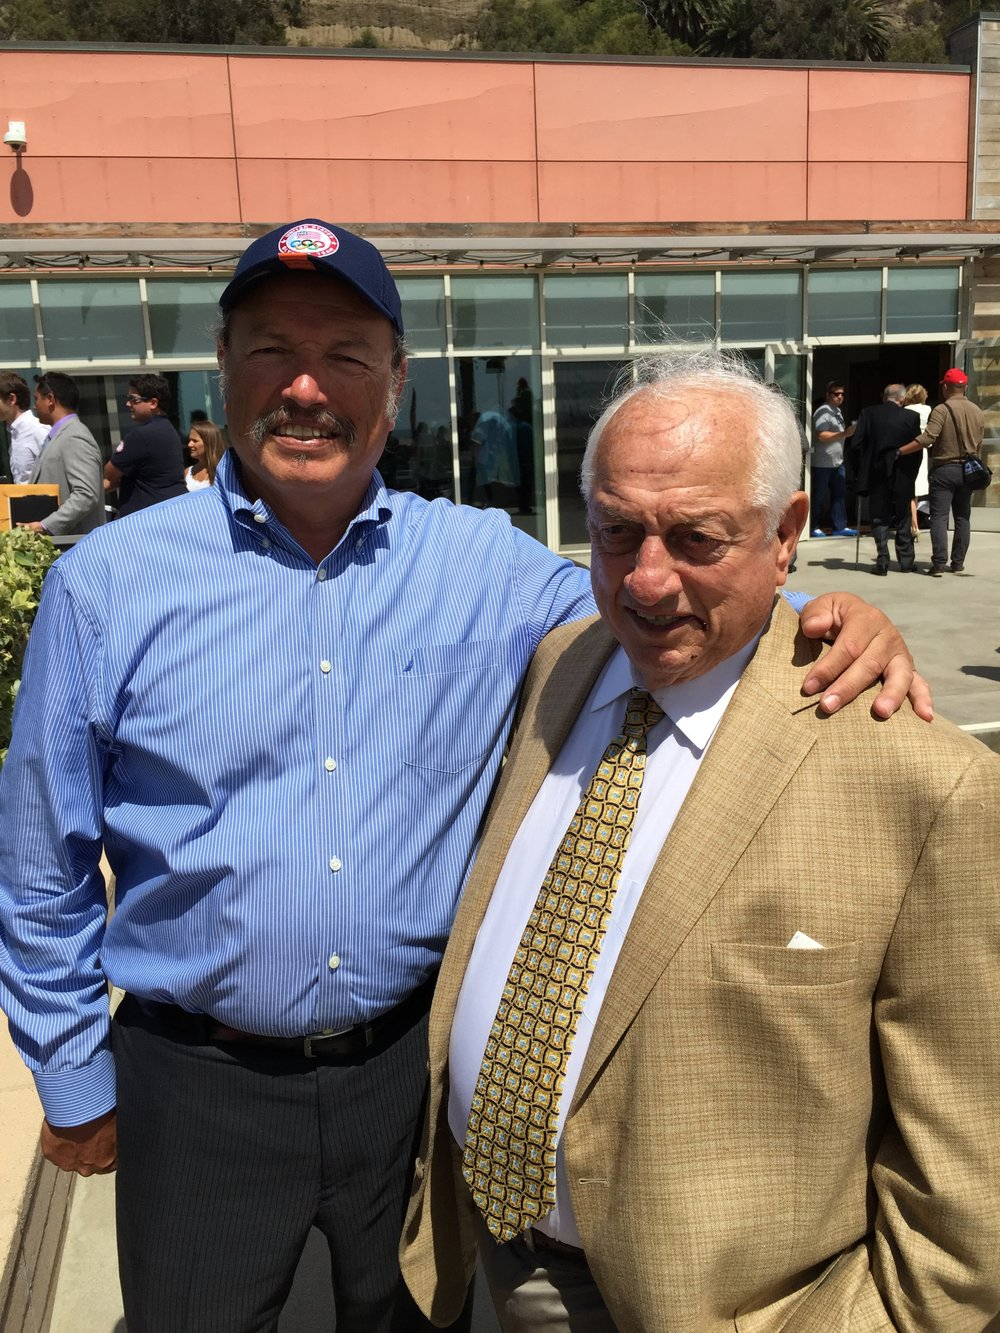 Tony with retired Dodgers manager Tommy Lasorda